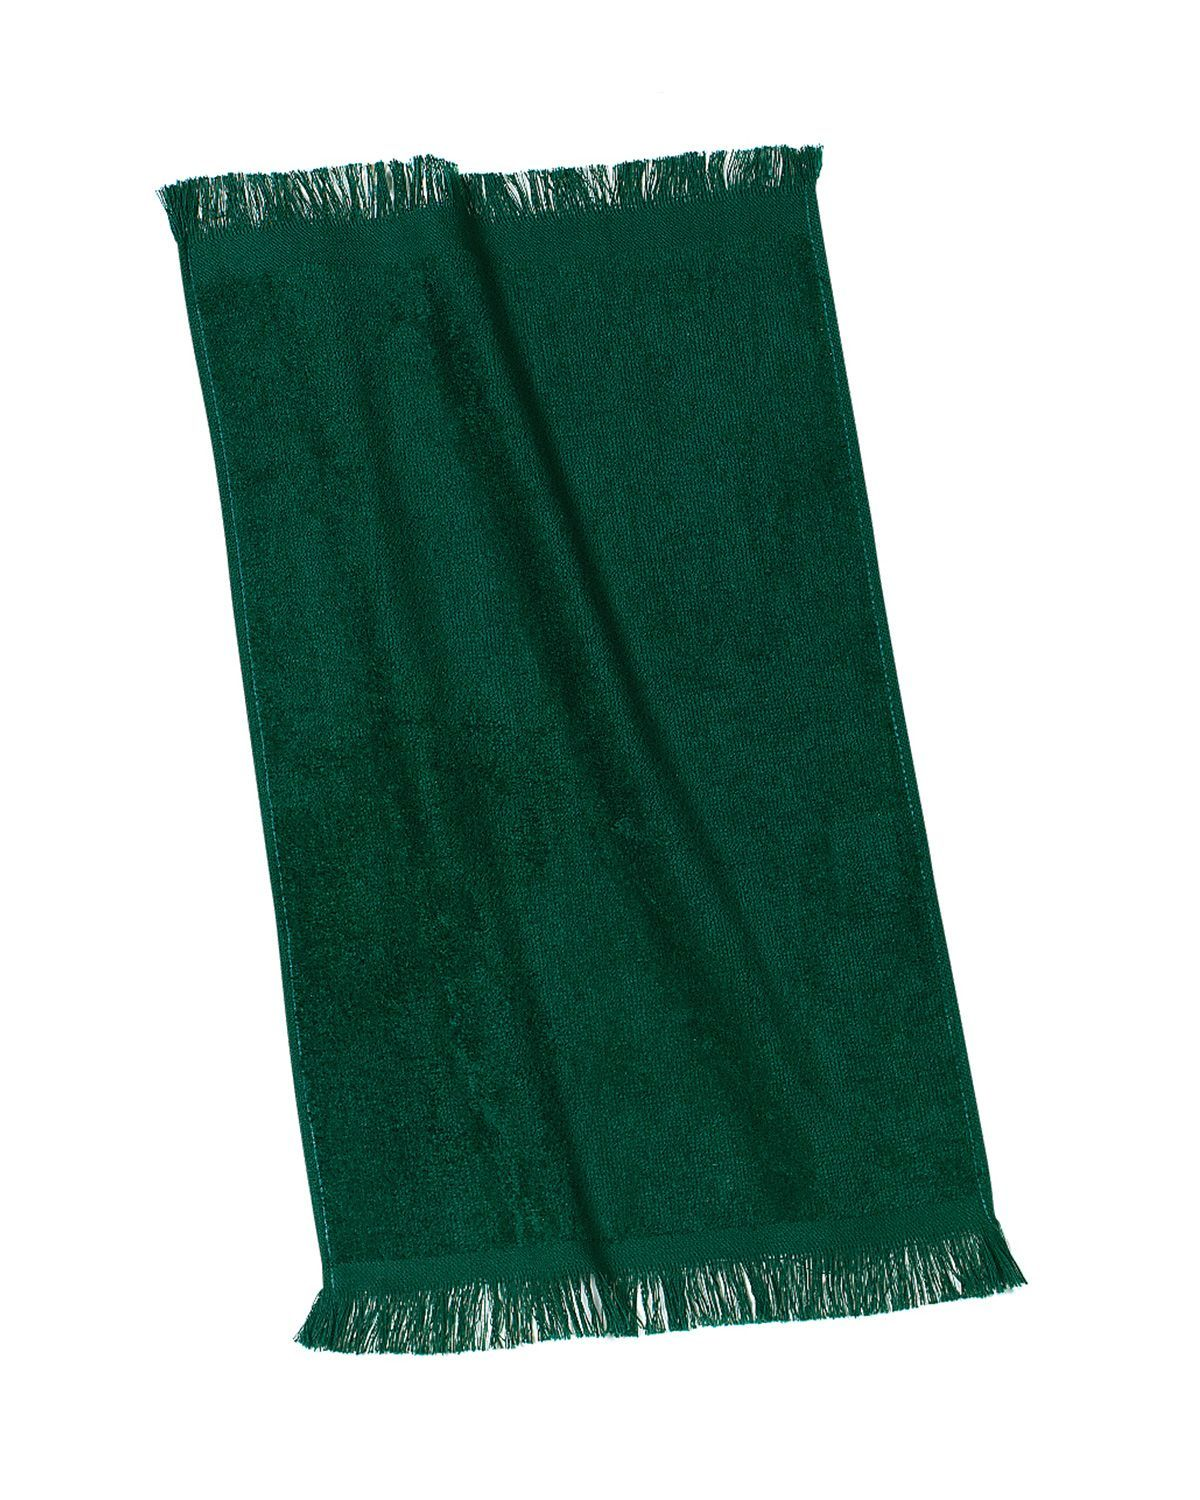 Port Authority PT39 Fingertip Towel